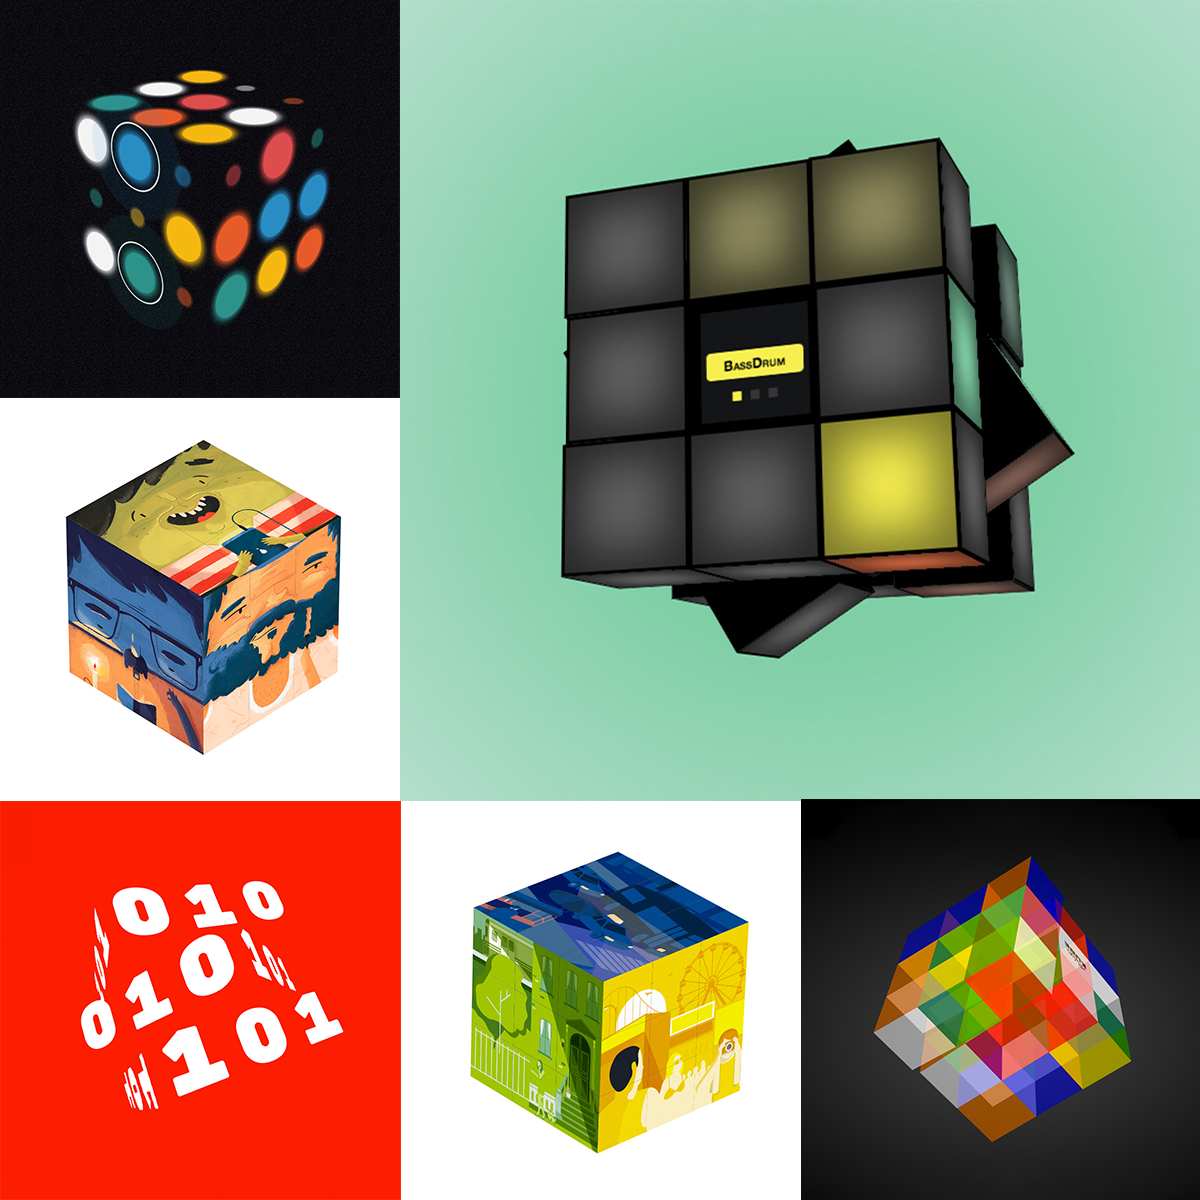 Gallery of Chrome experiments based upon the Rubik's Cube